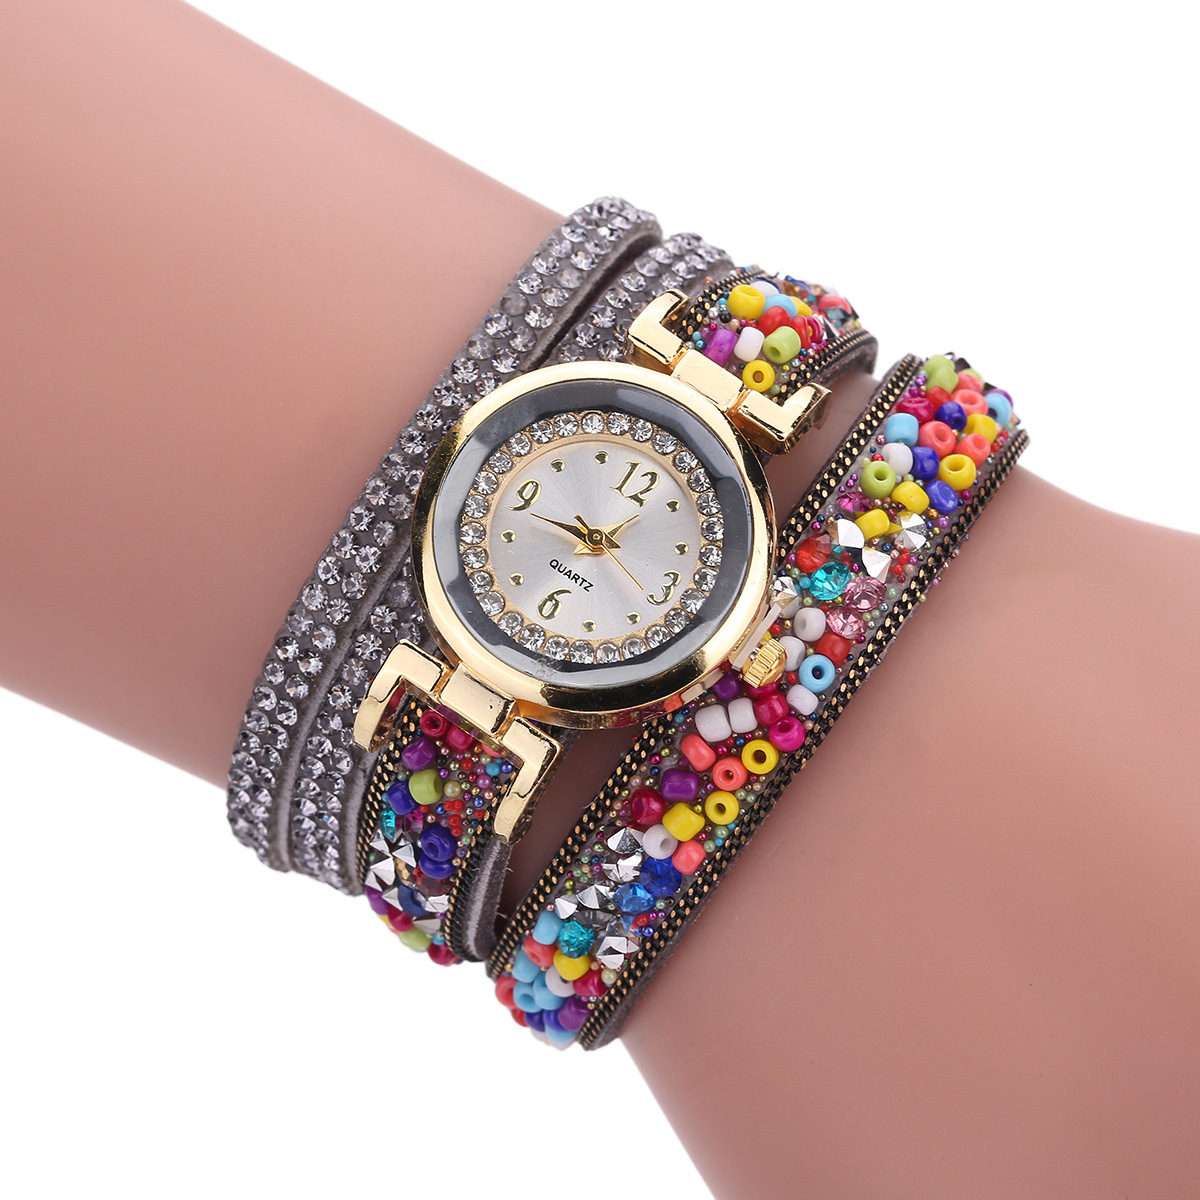 Fashion Luxury Leather Watch Women Classic Crystal Decor Bracelet Watch Ladies Cheap Orologio al quarzo Ceasuri Women reloj mujer